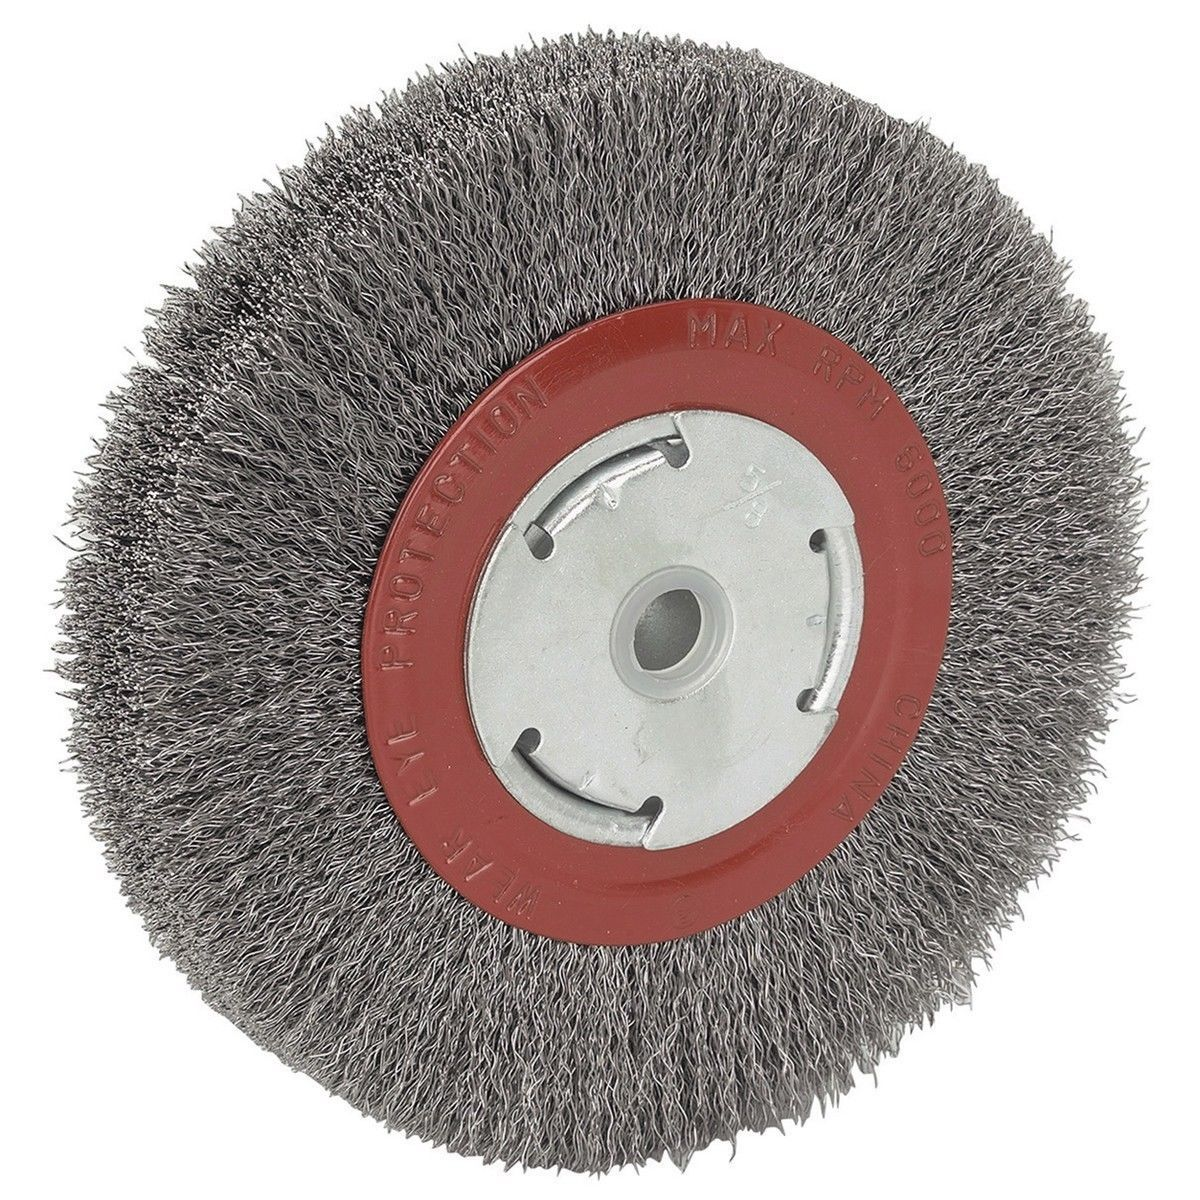 Stupendous 6 Inch Round Wirewheel Steel Wire Brush Wheel For Bench Gmtry Best Dining Table And Chair Ideas Images Gmtryco